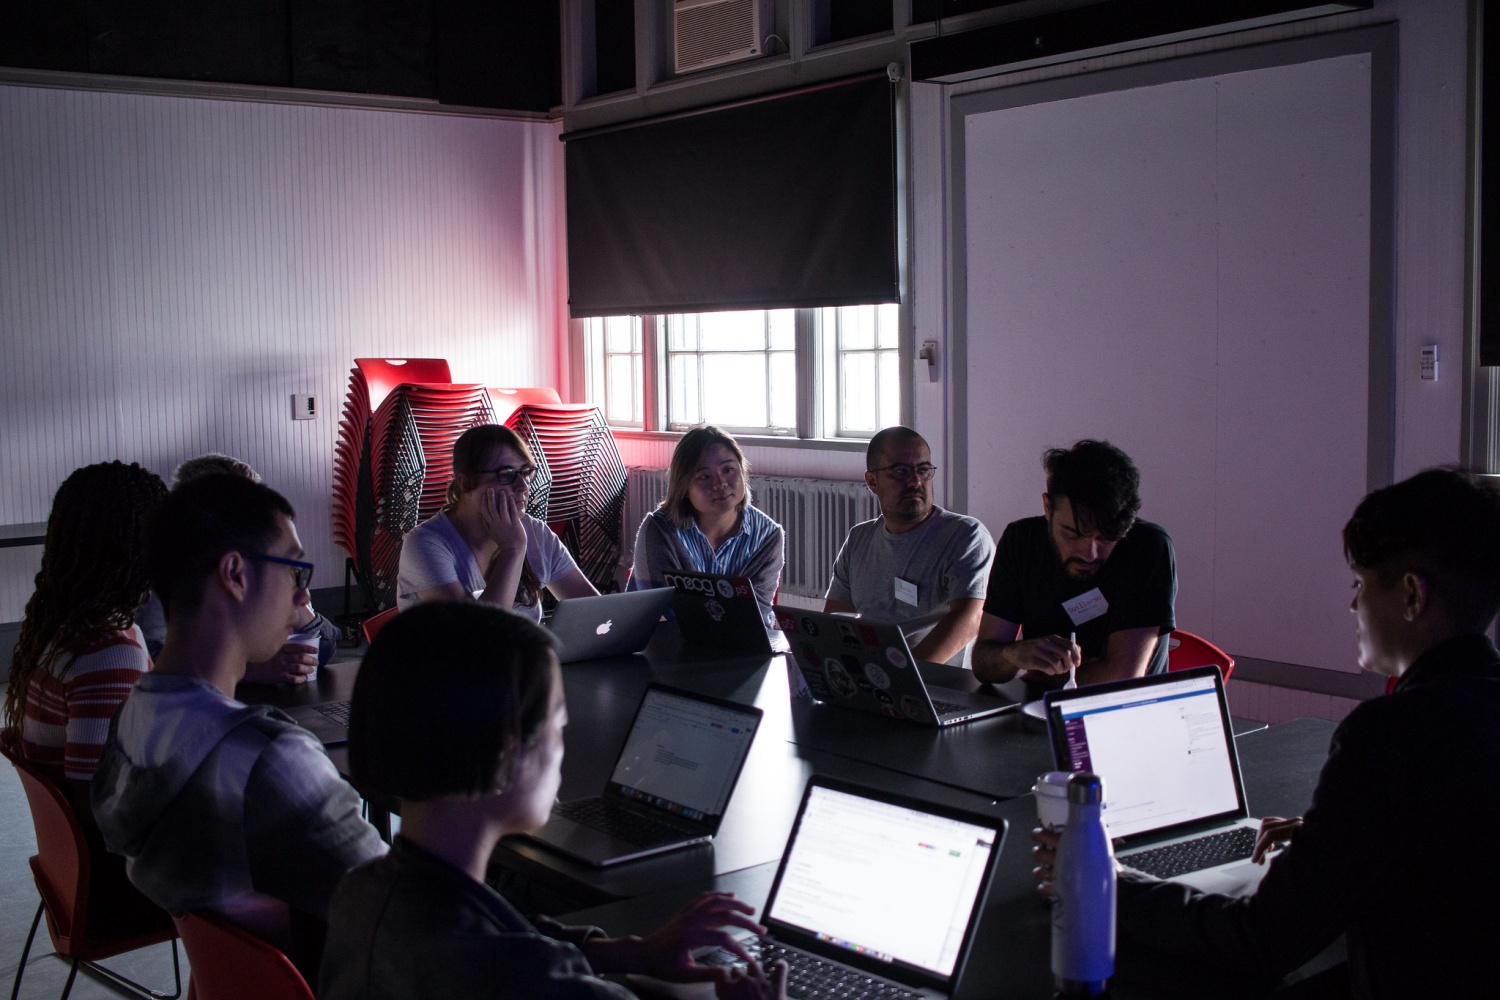 Participants in a meeting in a dark classroom